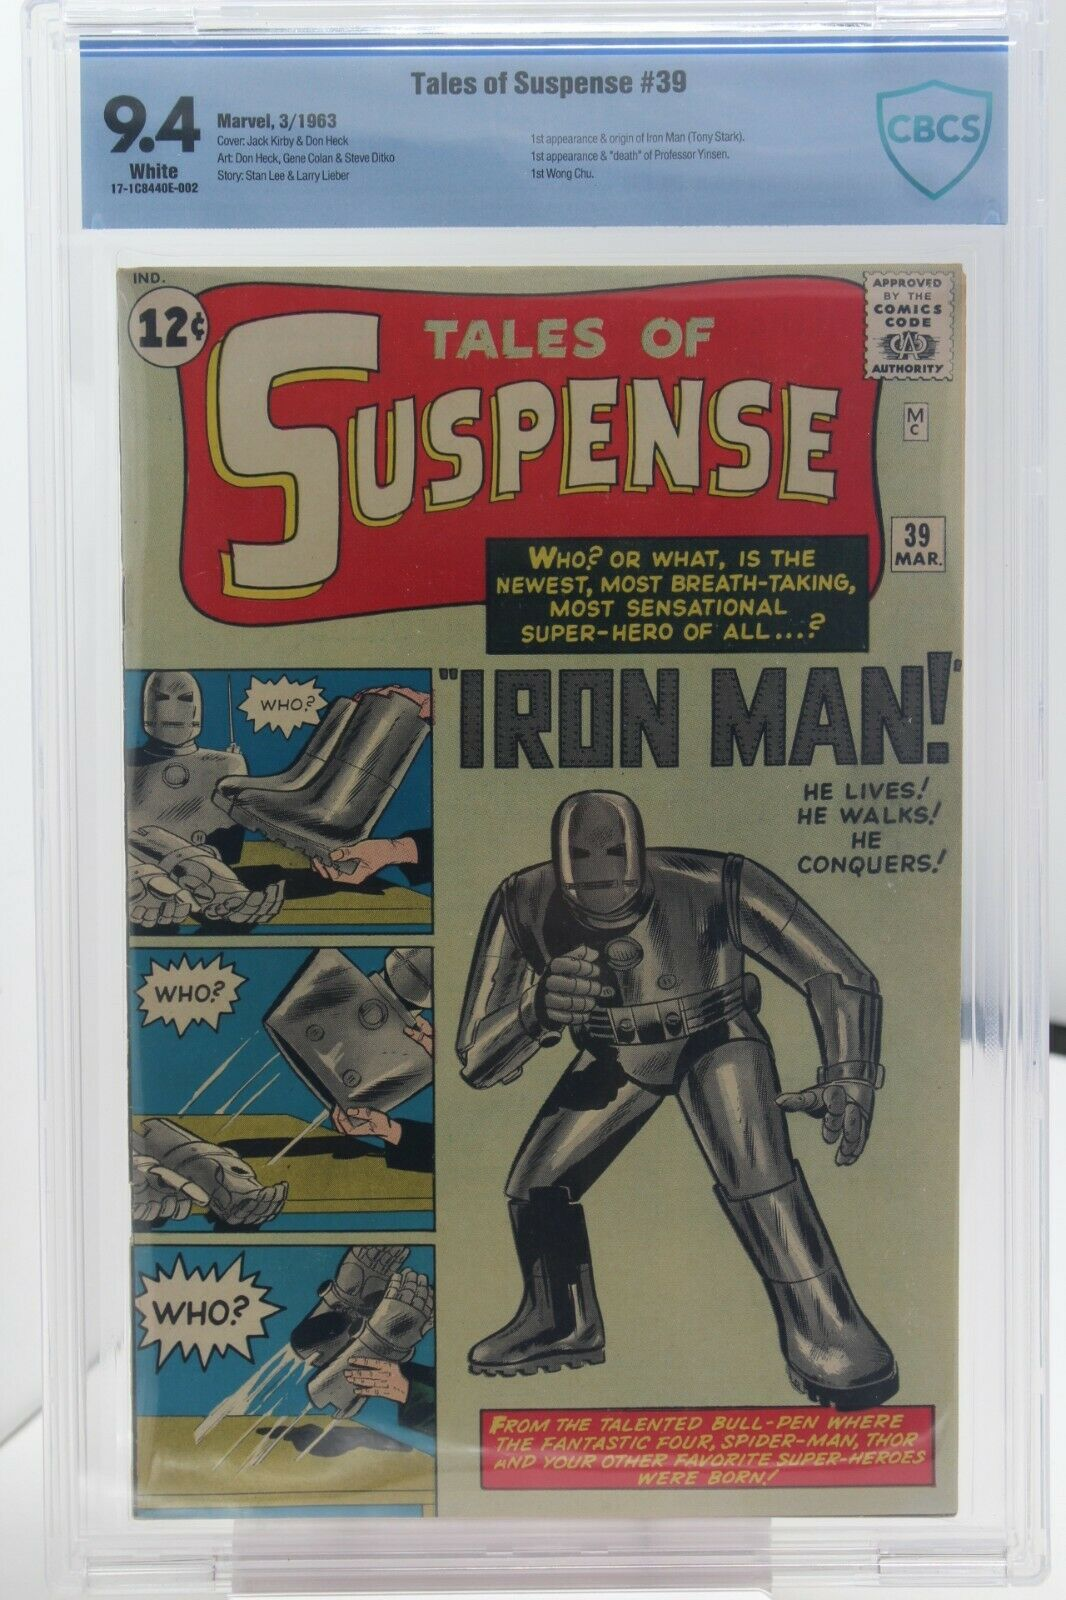 TALES OF SUSPENSE # 39 CBCS 9.4 - Marvel - 1st App & Origin of IRON MAN - KEY